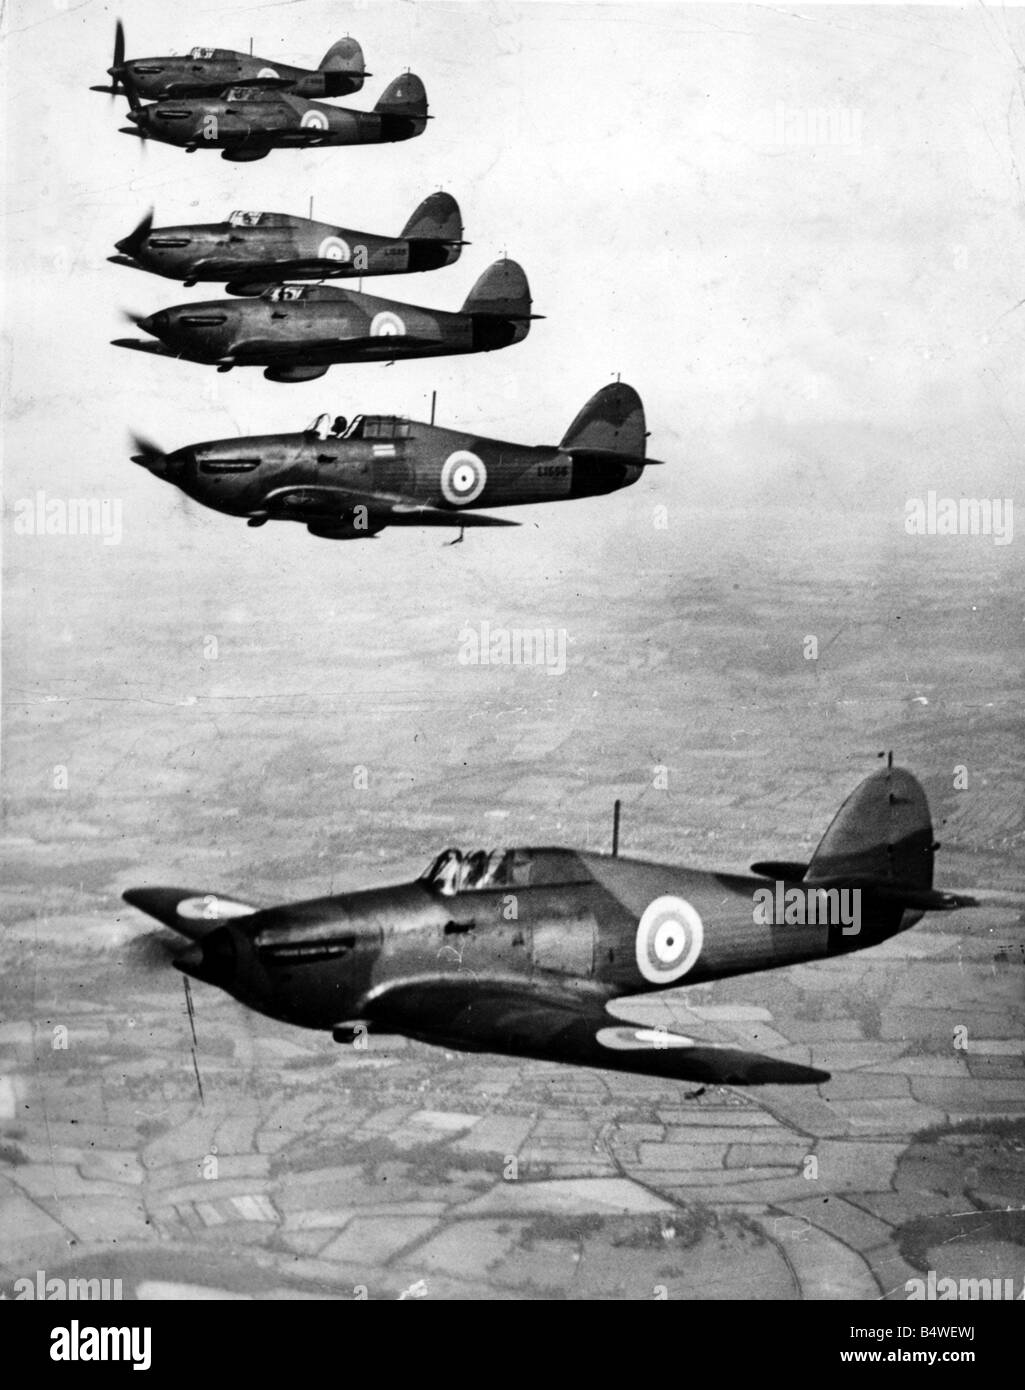 war world war ii battle of britain picture shows a group